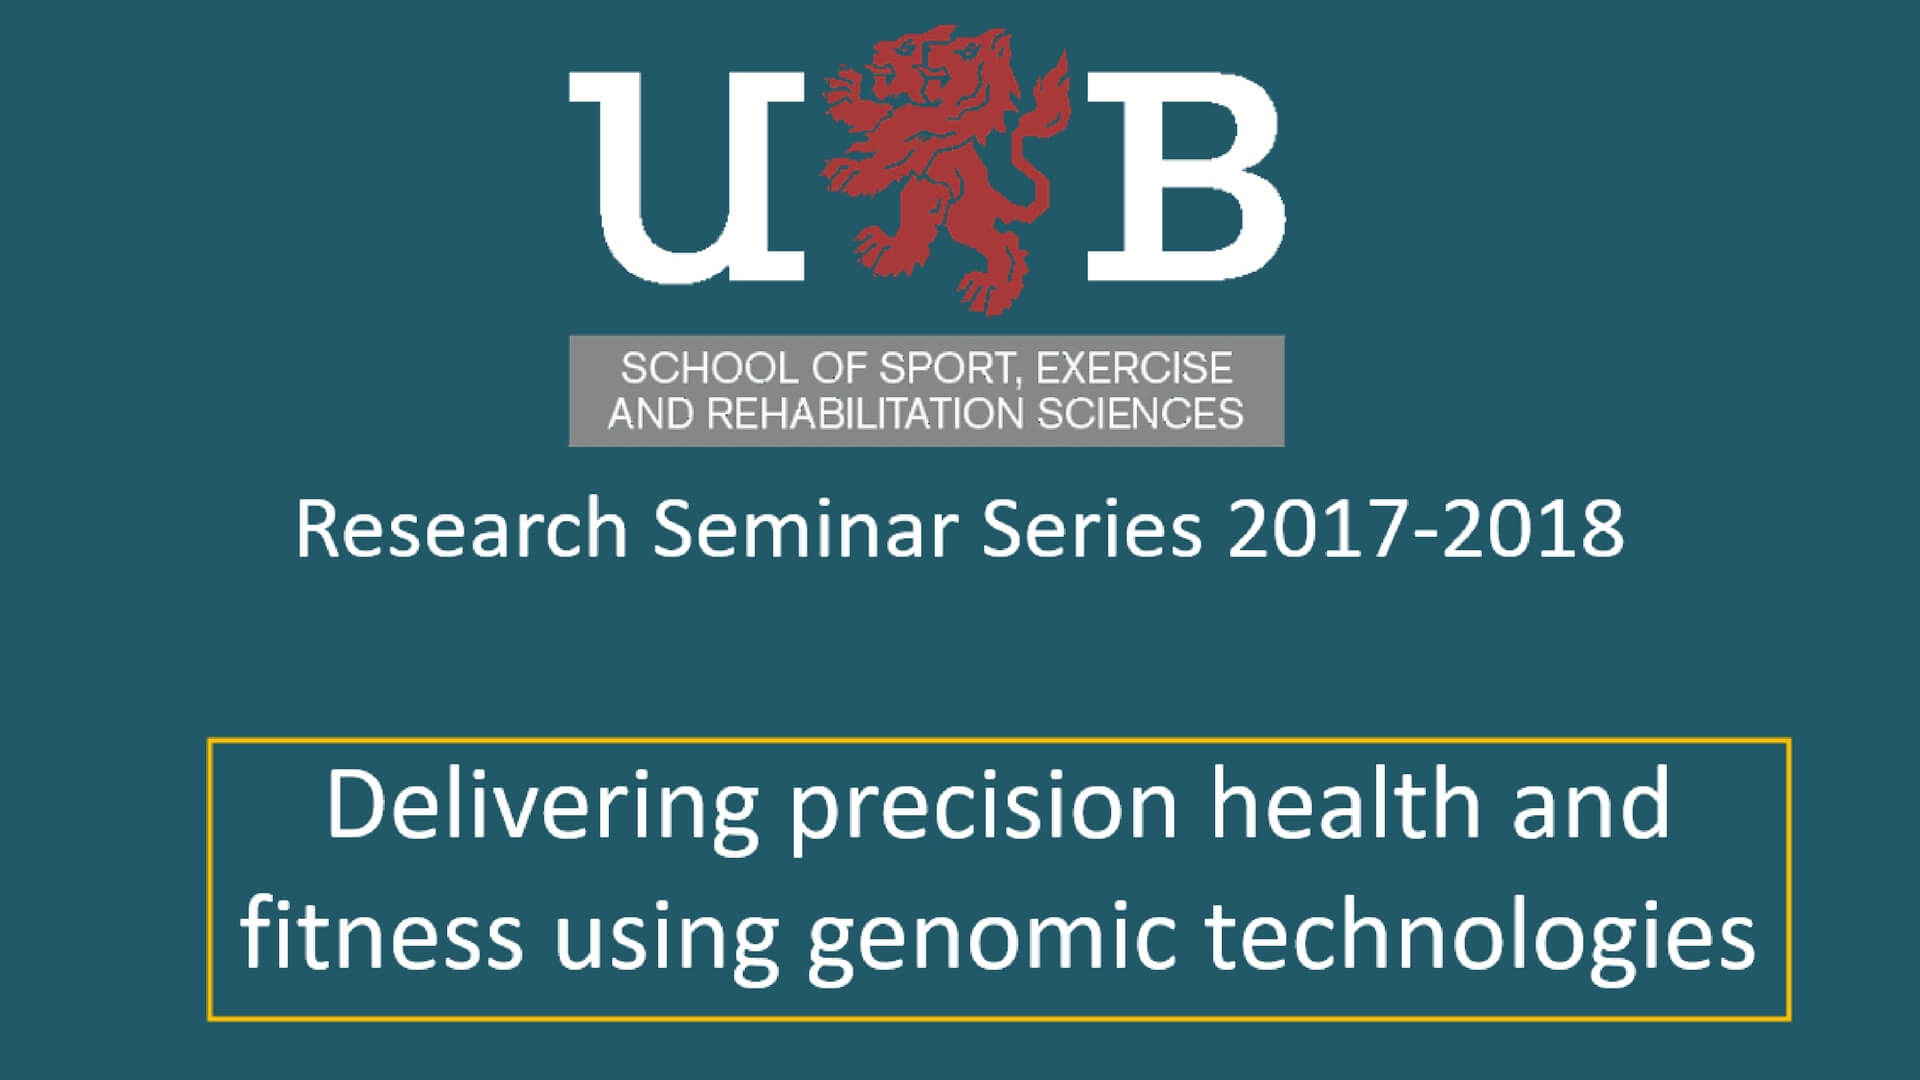 Delivering precision health and fitness using genomic technologies